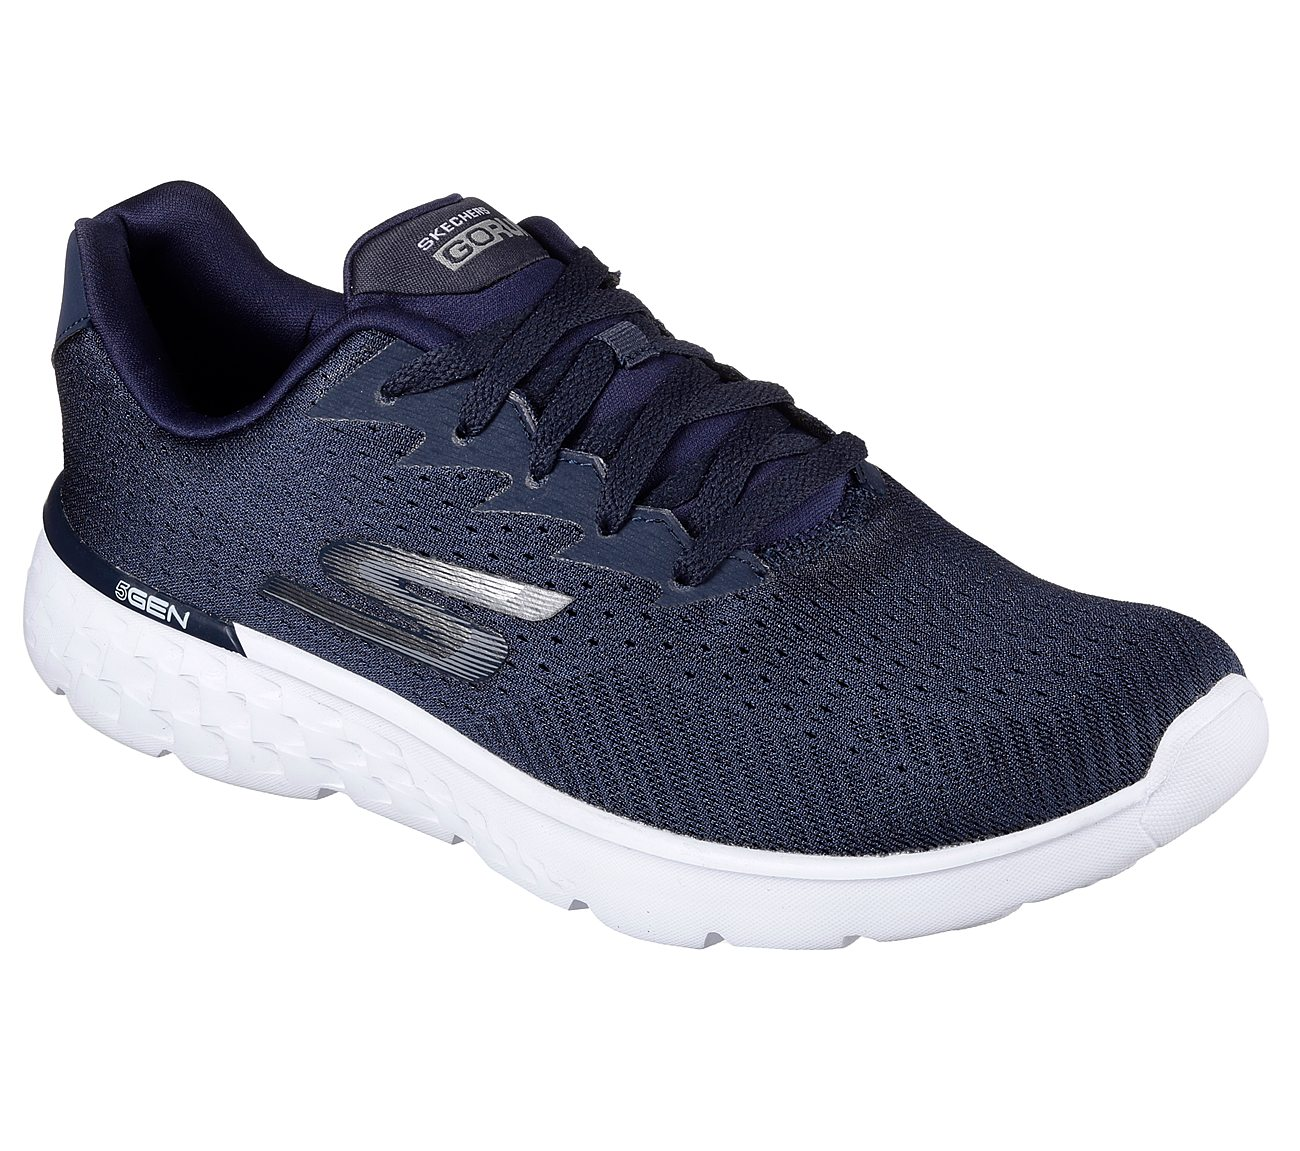 Skechers GOrun 400 Generate Men's Shoes | Products